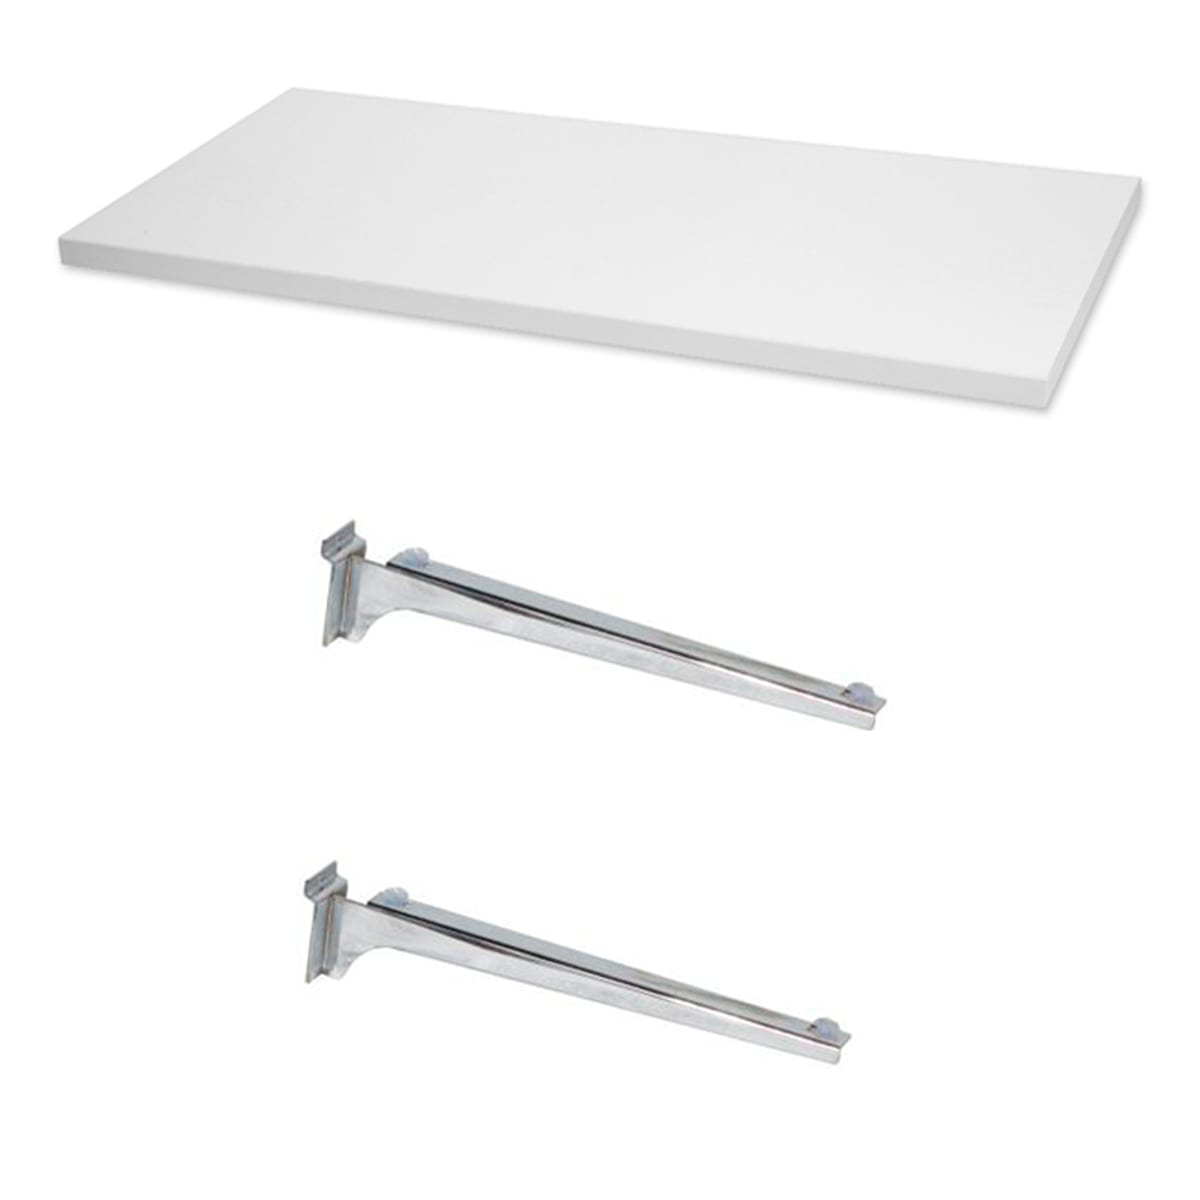 melamine shelf with bracket set